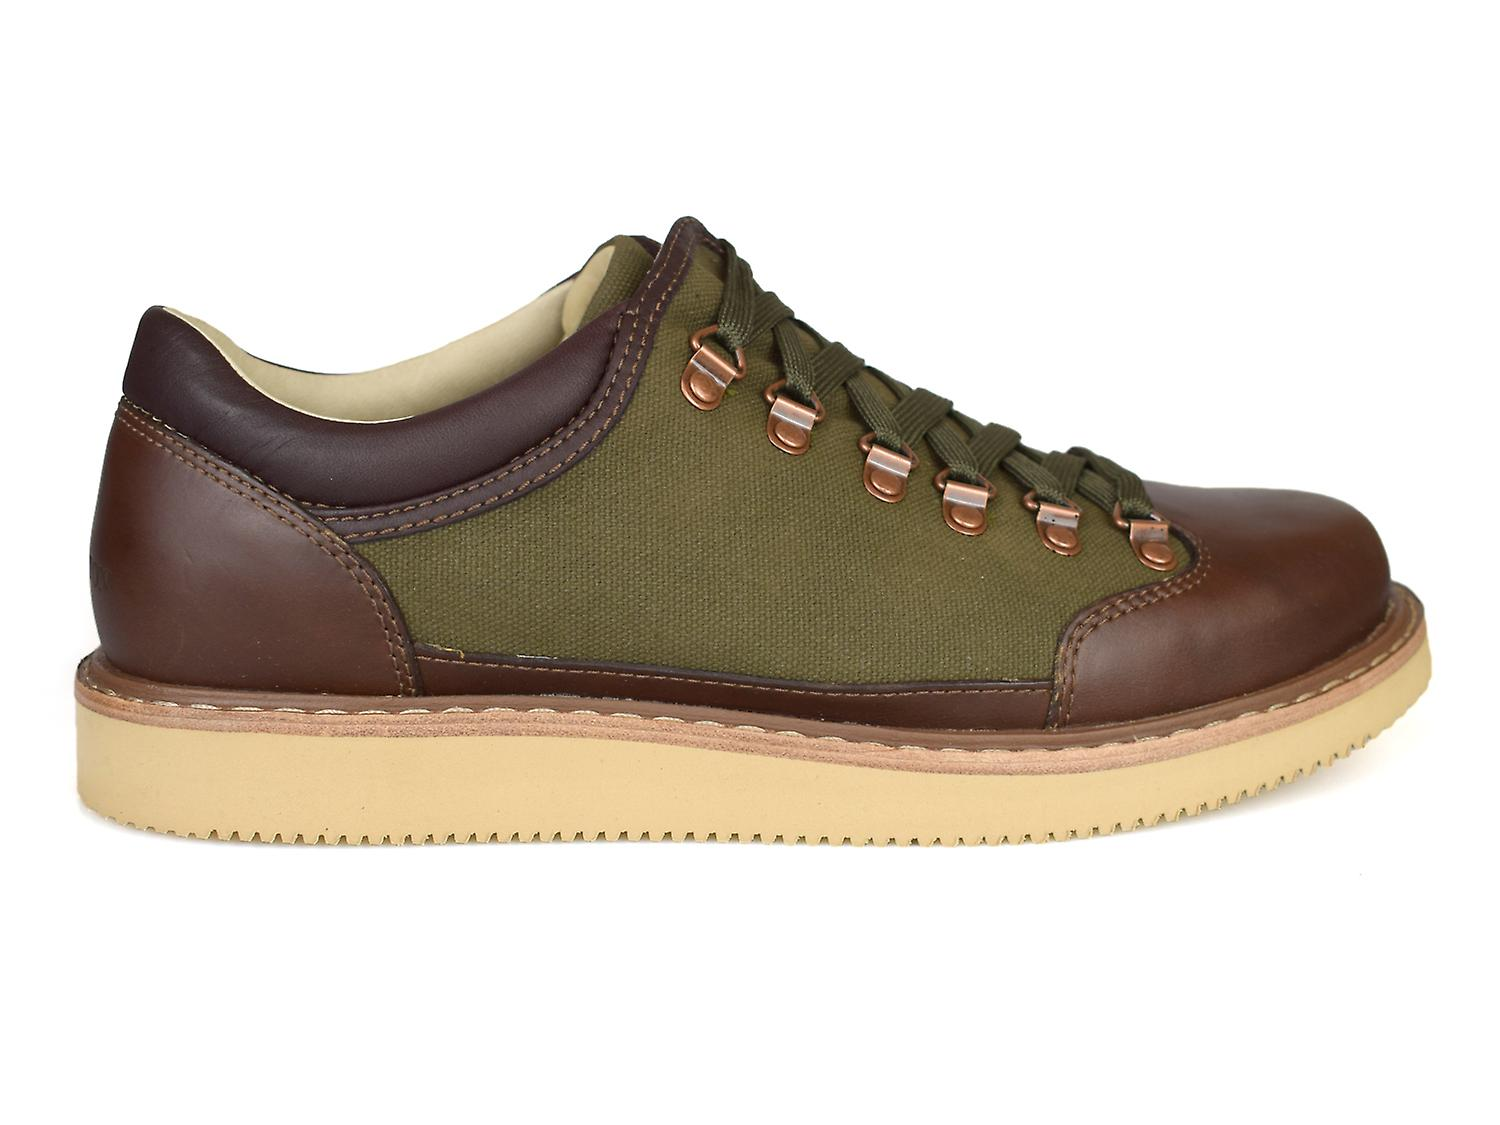 Timberland Abington Alpine OX Brown Leather Shoes 81505